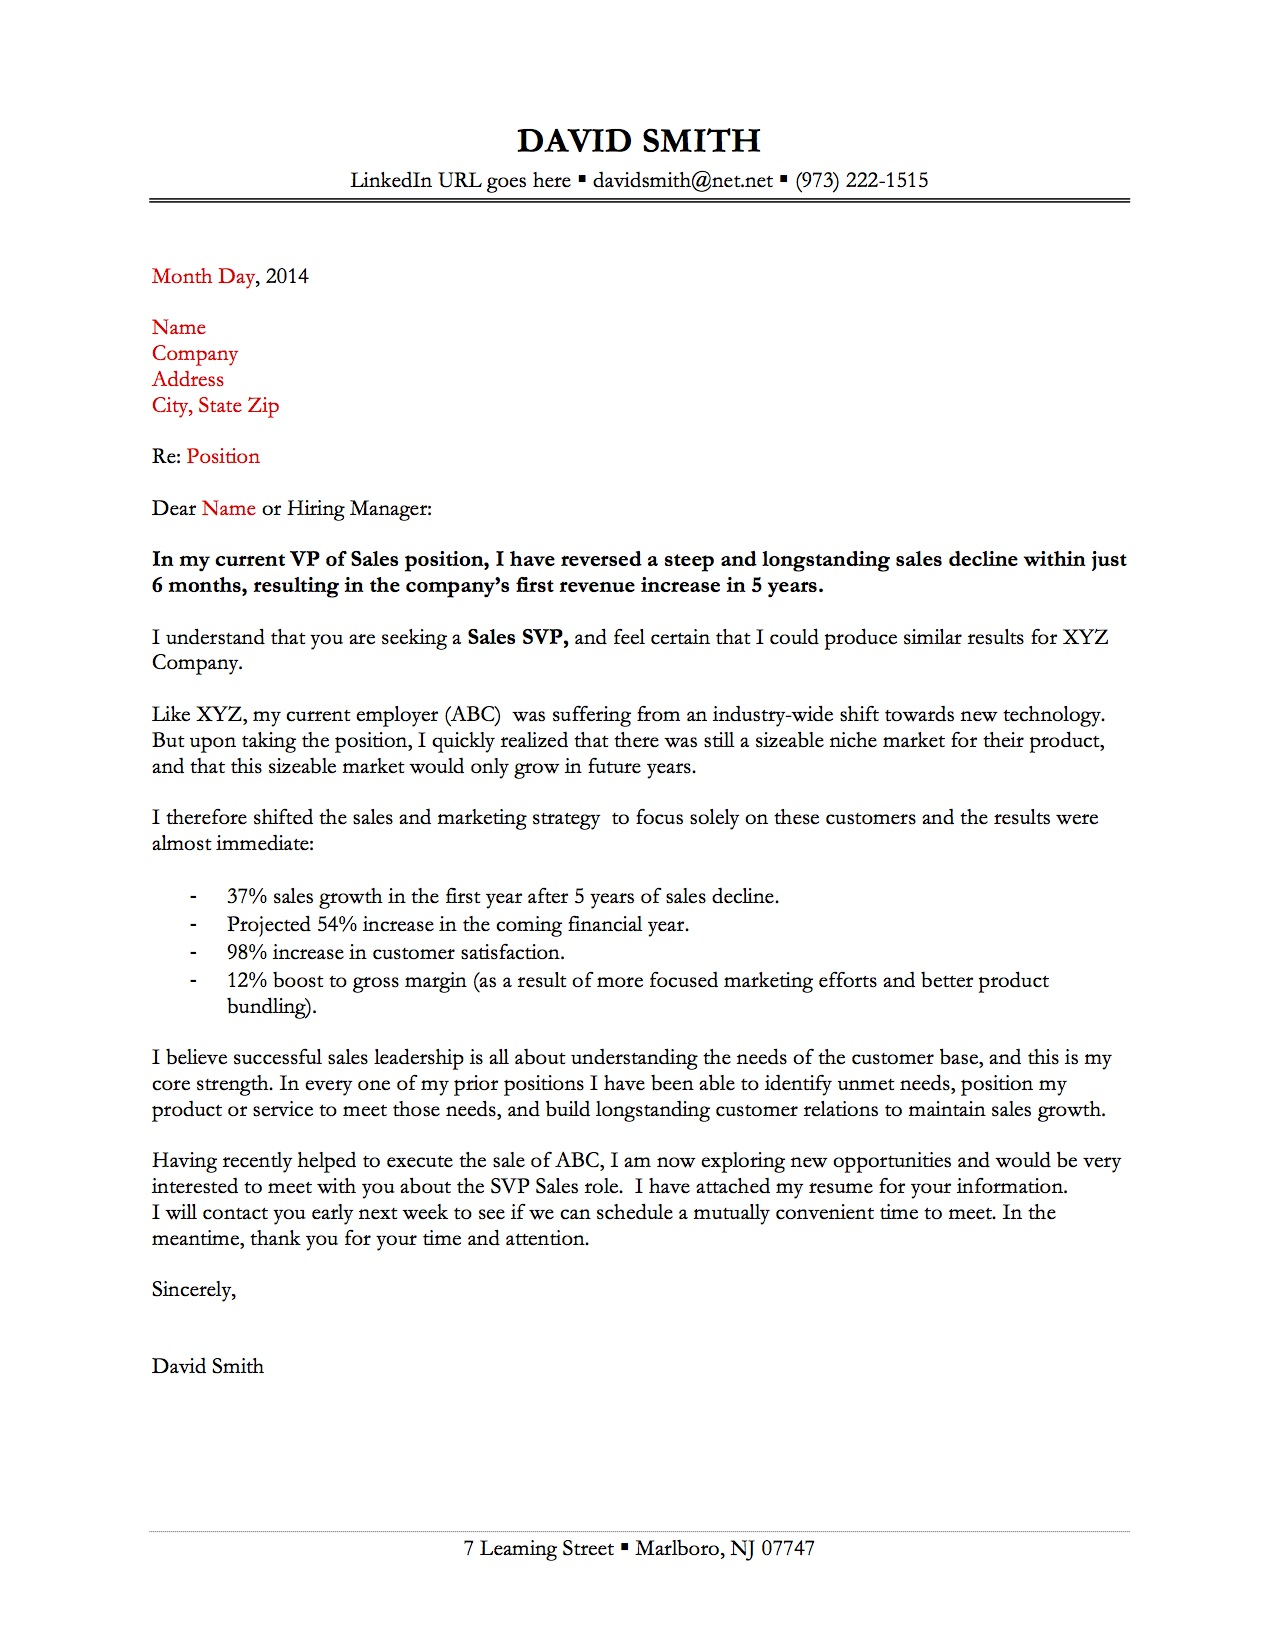 great cover letters two great cover letter examples blue sky resumes 22020 | sample cover letter 2